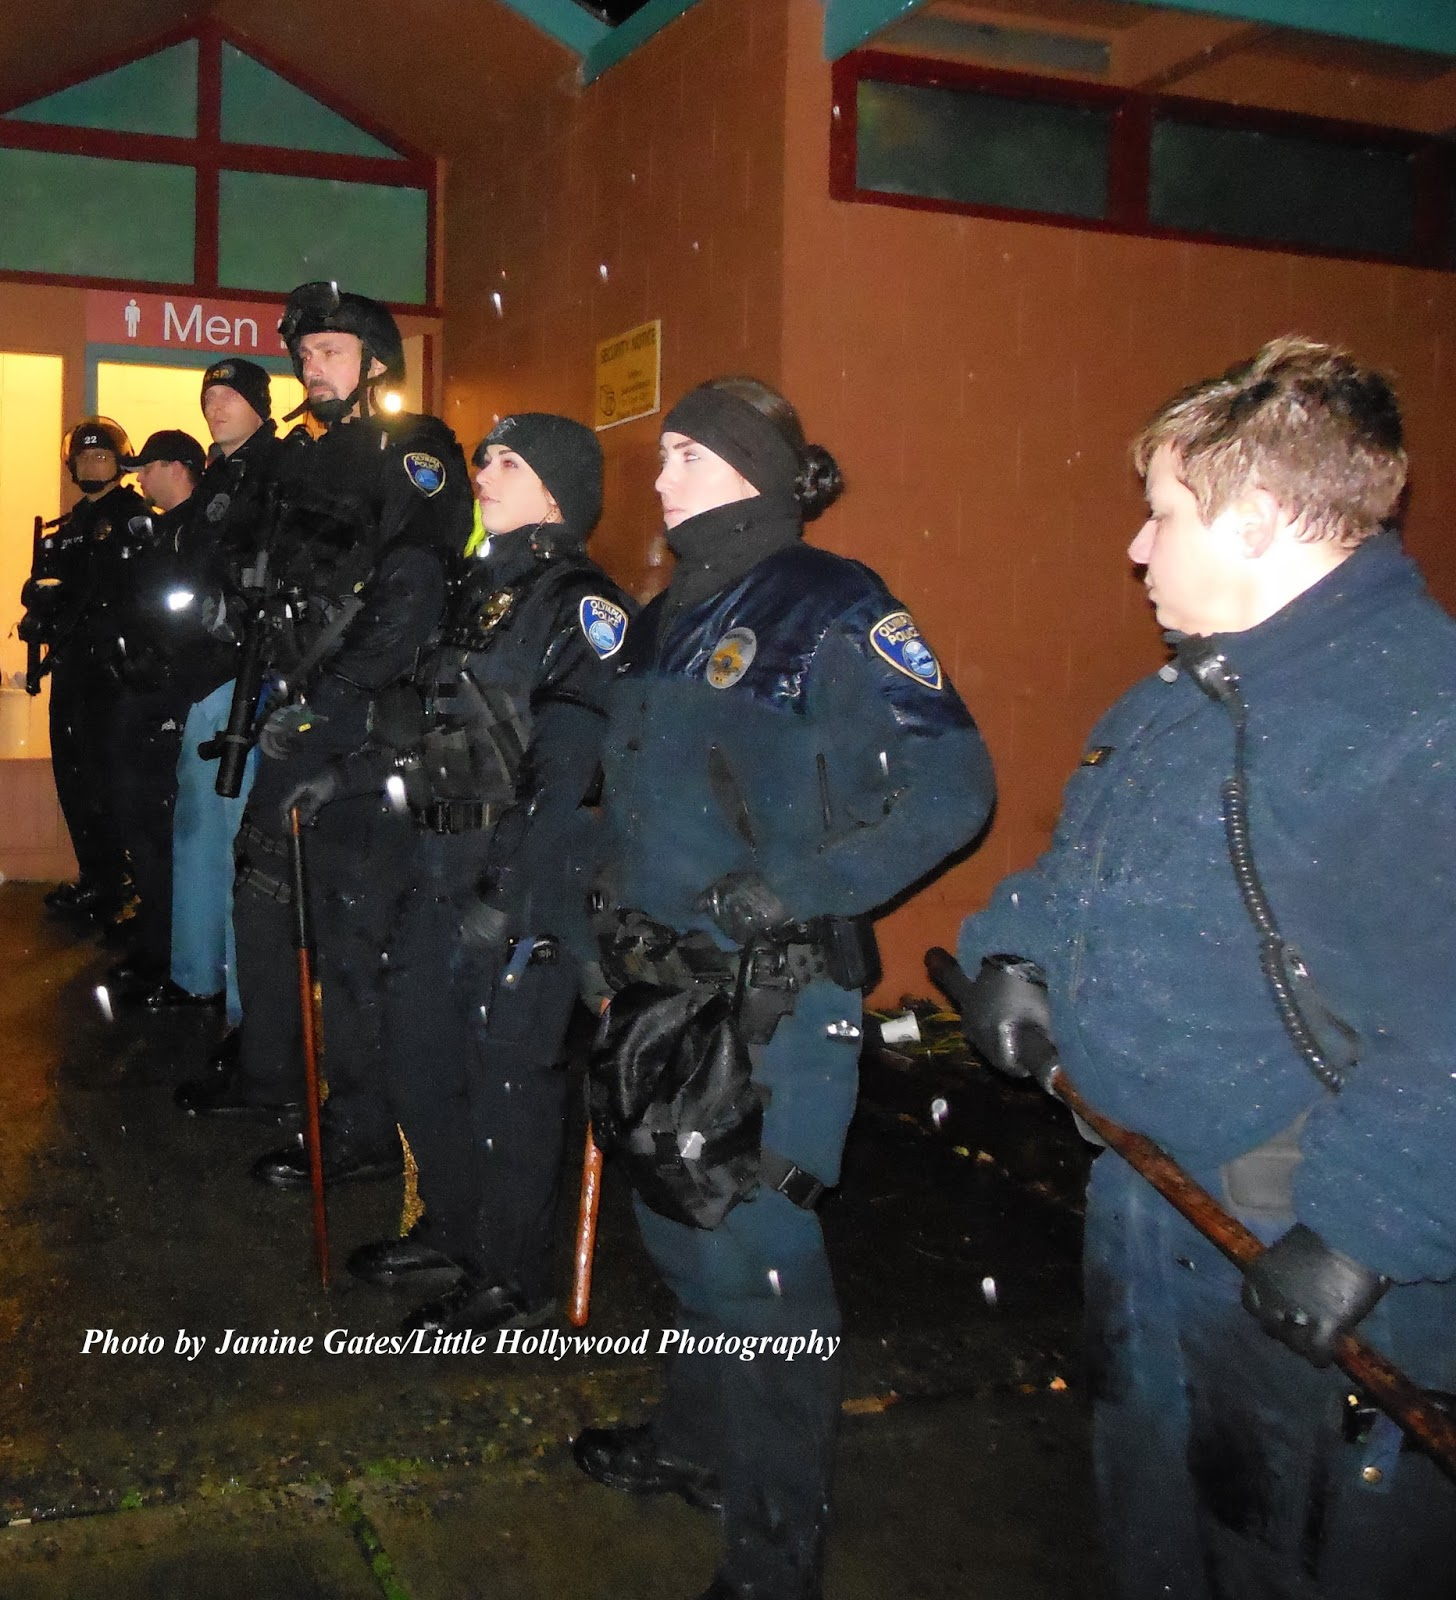 Unique Above Olympia Police Department officers armed with pepper ball guns assist Washington State Patrol officers at the Heritage Park restrooms on Monday